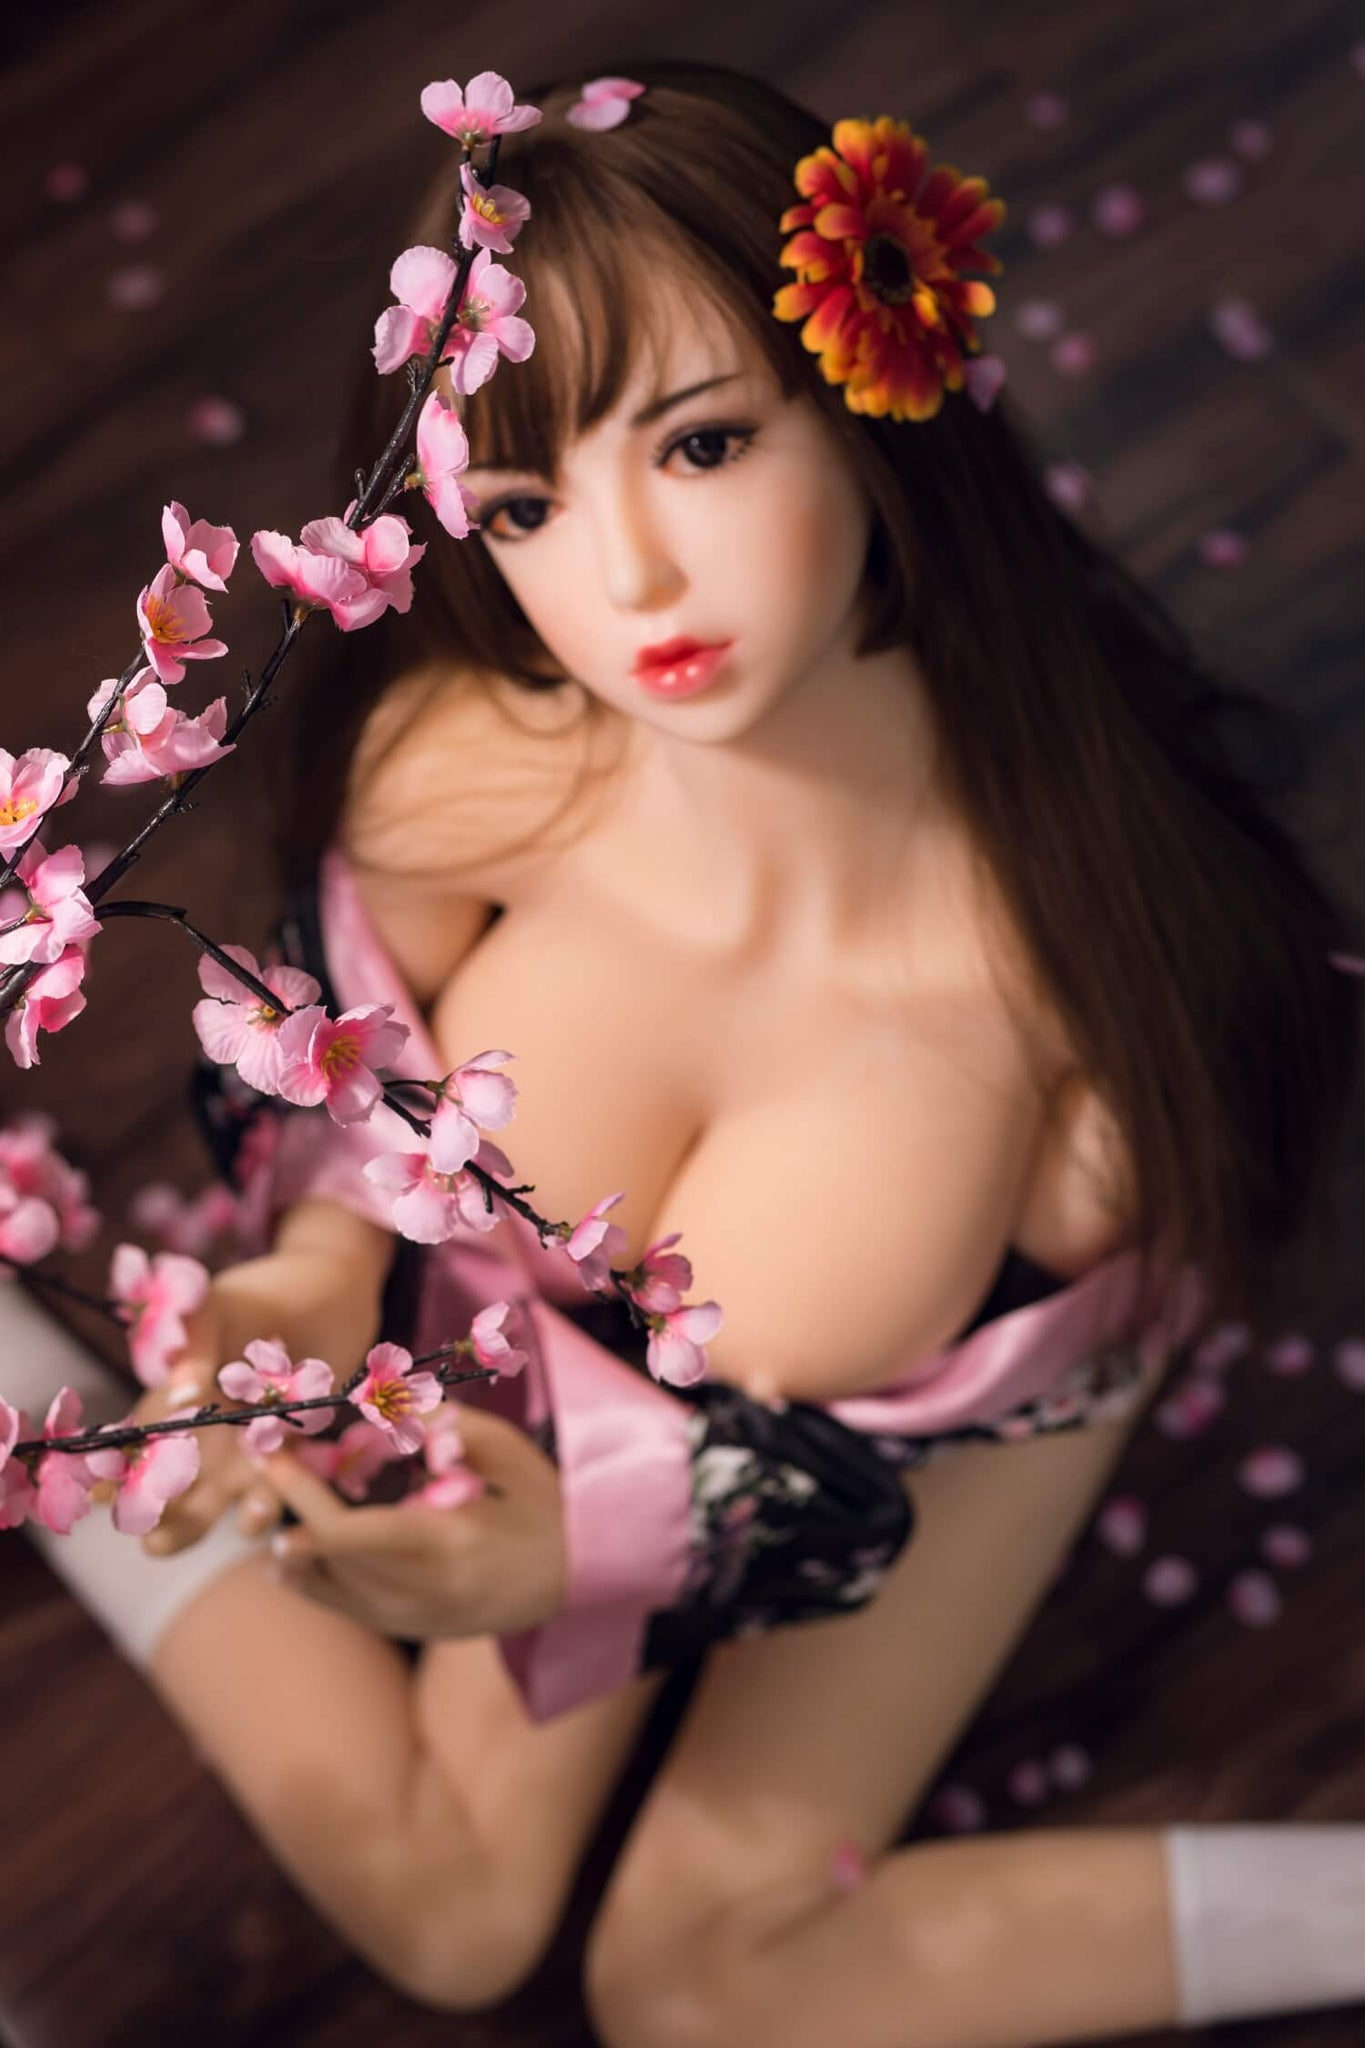 Iris Sex Doll - Japanese Cherry Love Doll